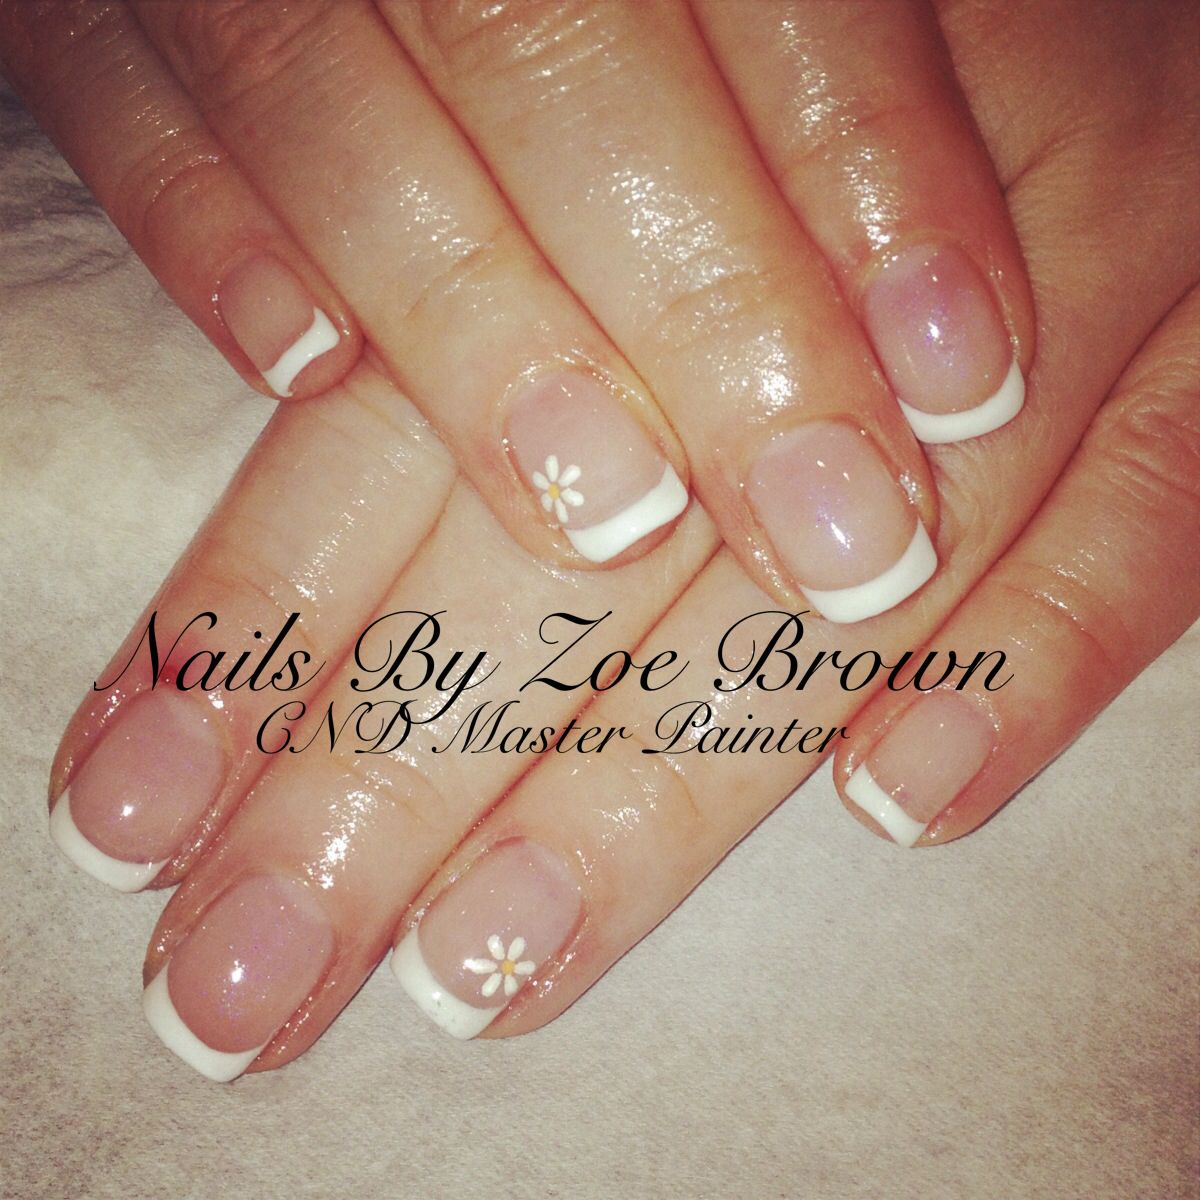 CND shellac French manicure with daisies | Valentine crafts ...